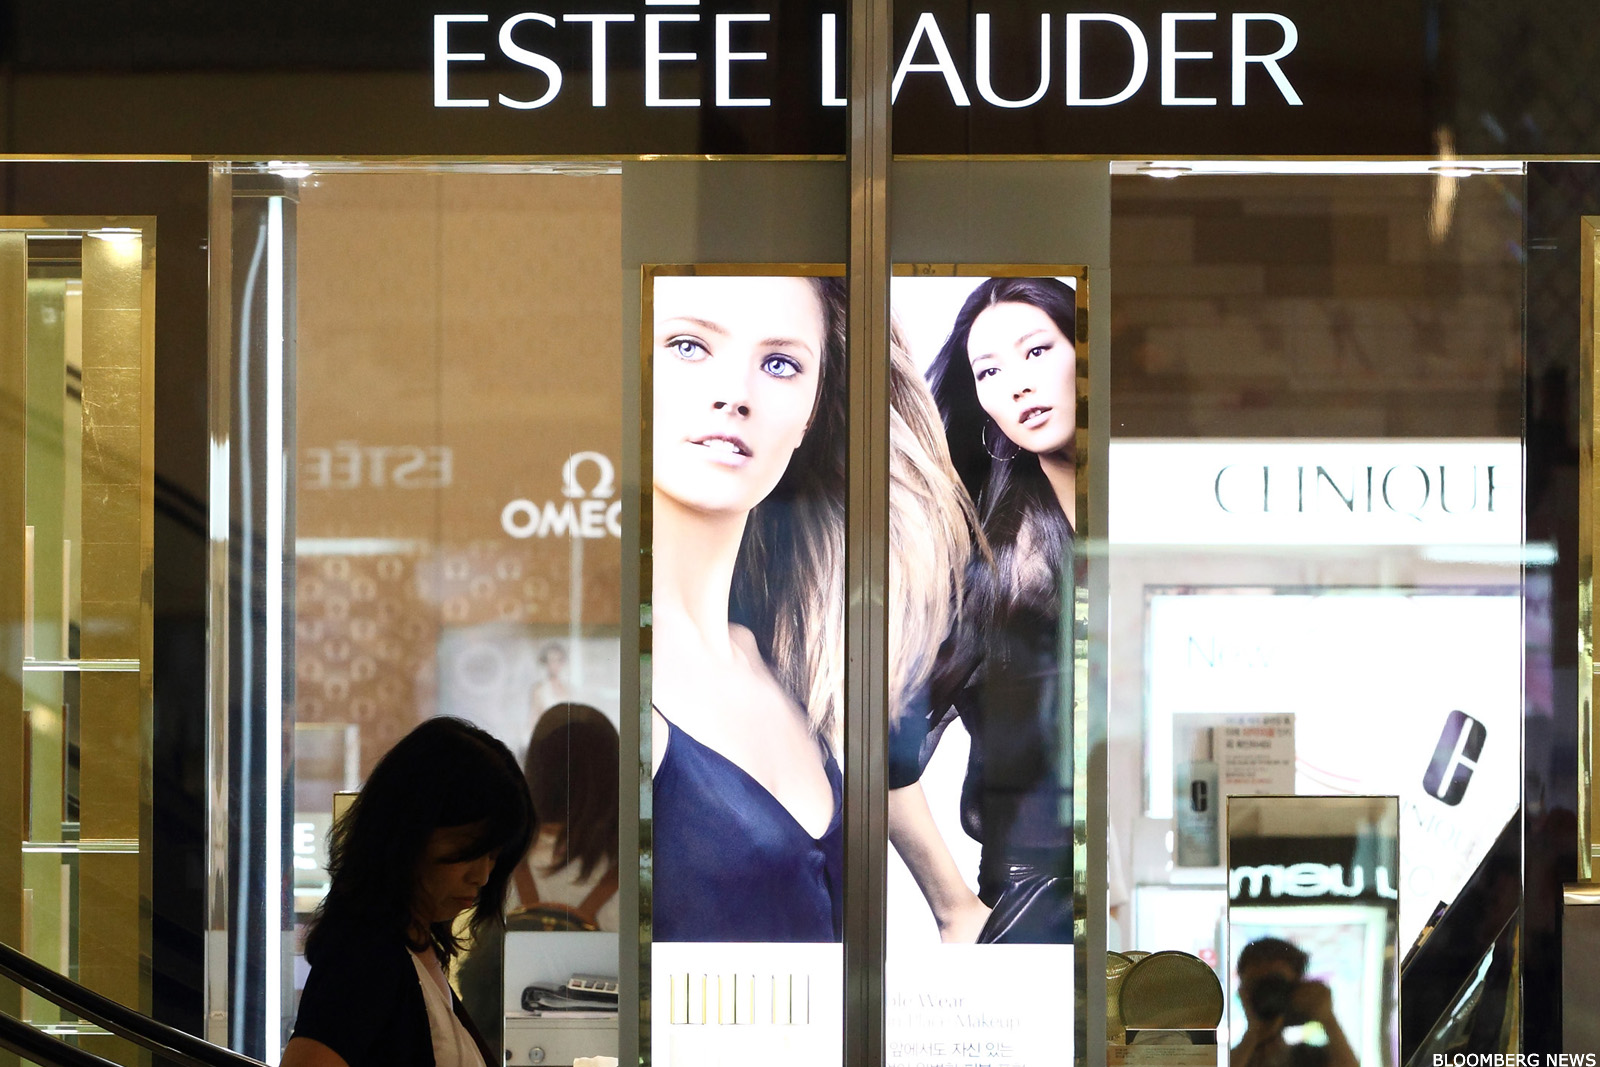 Estee Lauder's future threatened by sweeping Macy's store closings